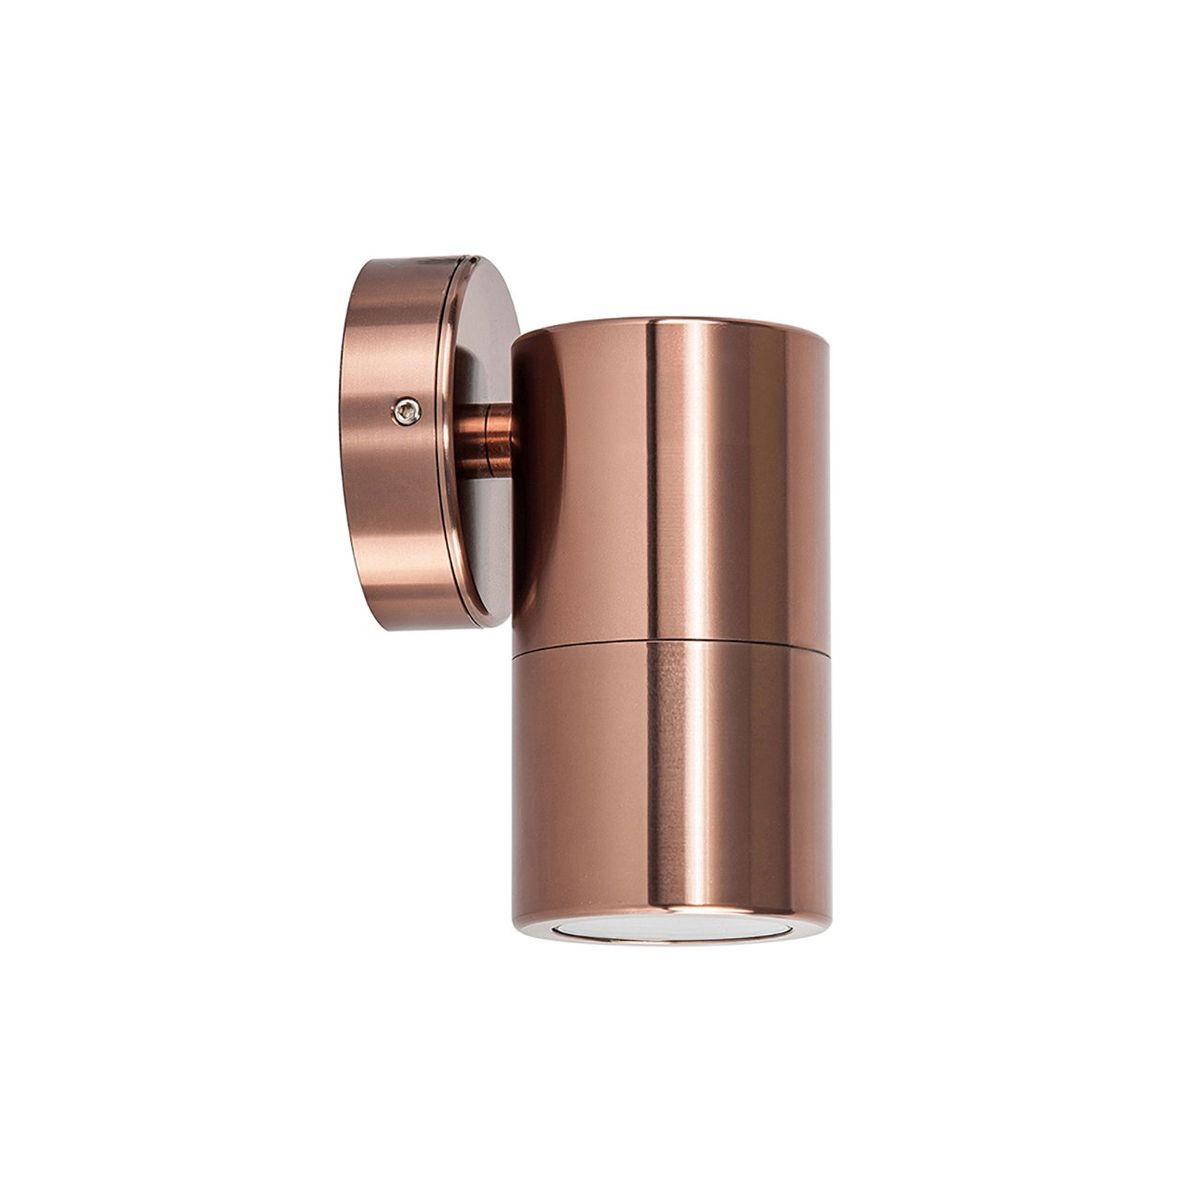 HV1196 - Tivah Bronze Fixed Down Wall Pillar Light – Bild 1